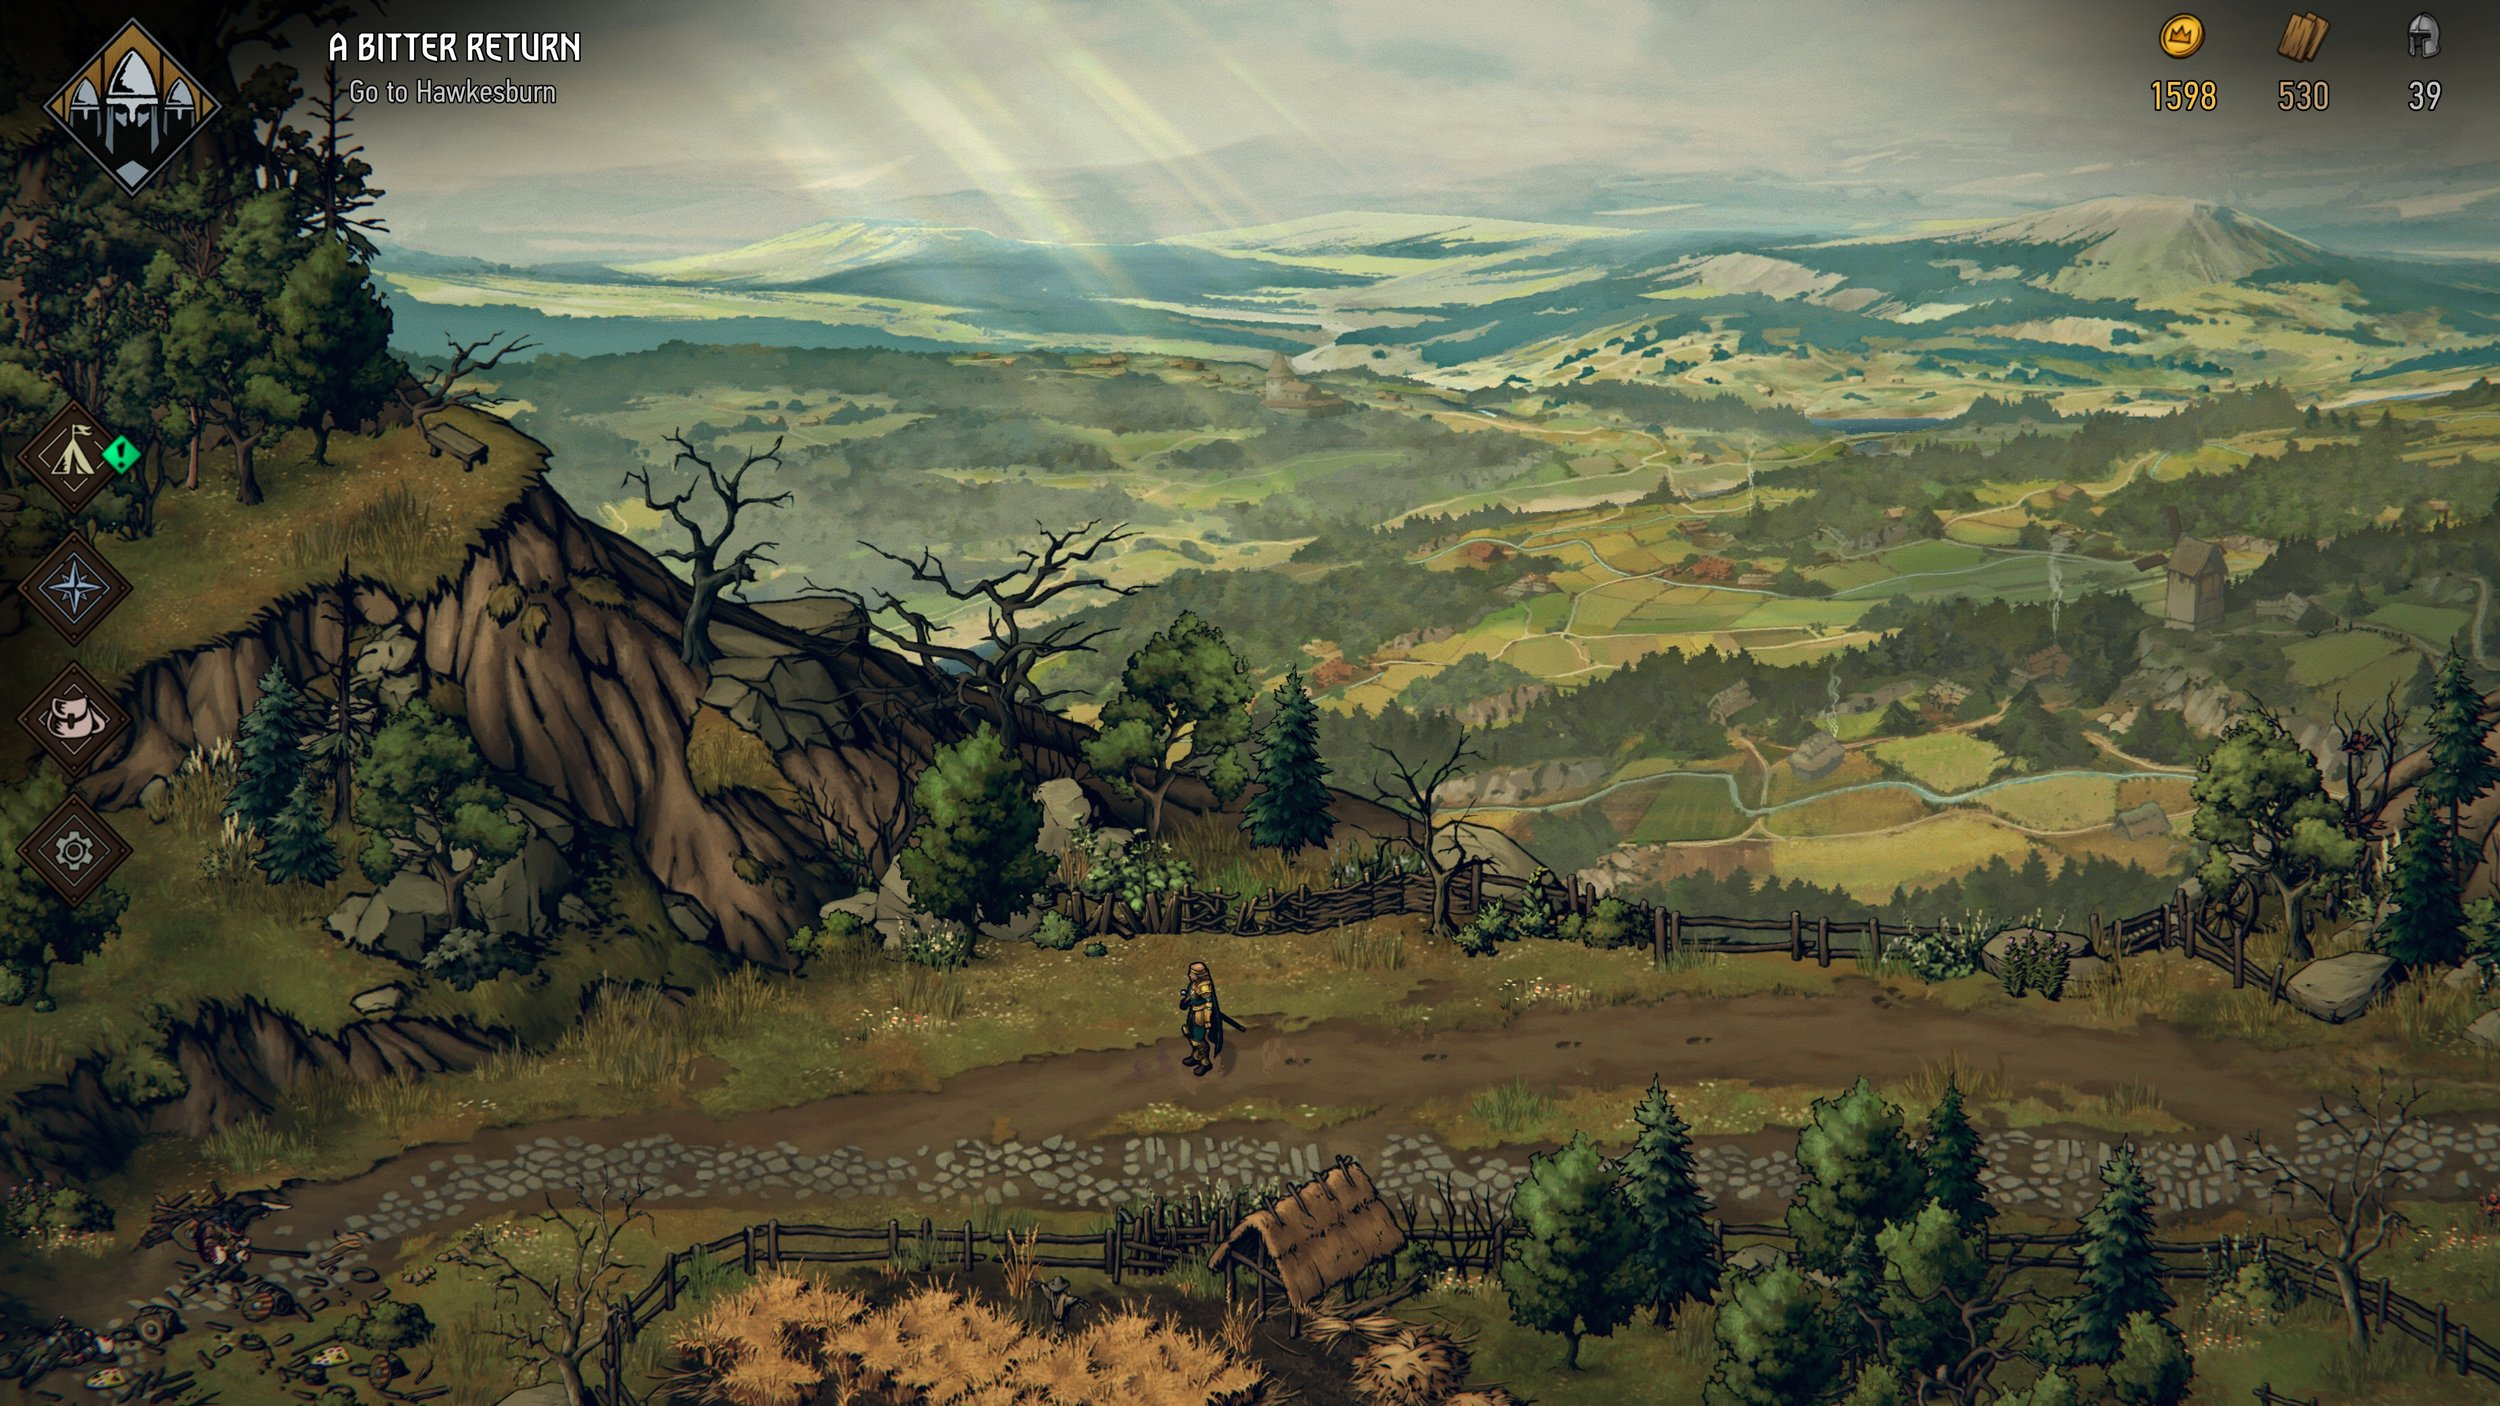 The whole game is like a water colored painting in true Witcher style.